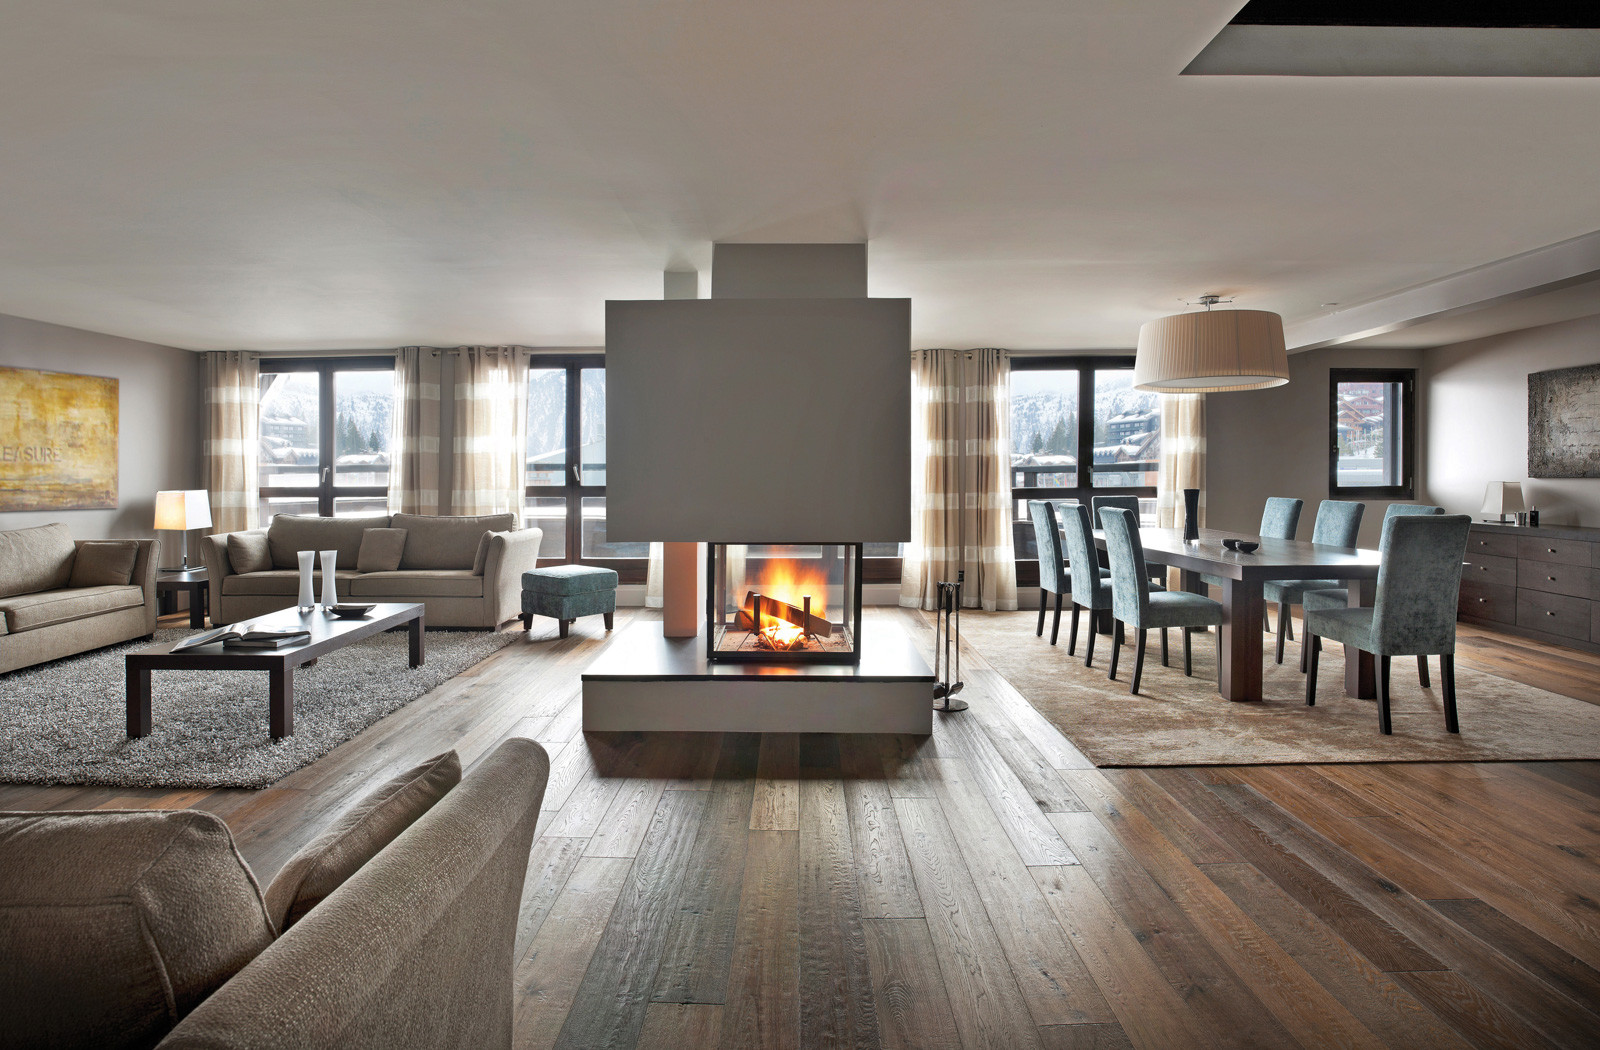 Kings-avenue-courchevel-tv-wifi-satelitte-jacuzzi-hammam-swimming-pool-childfriendly-parking-gym-fireplace-swimming-pool-spa-area-courchevel-036